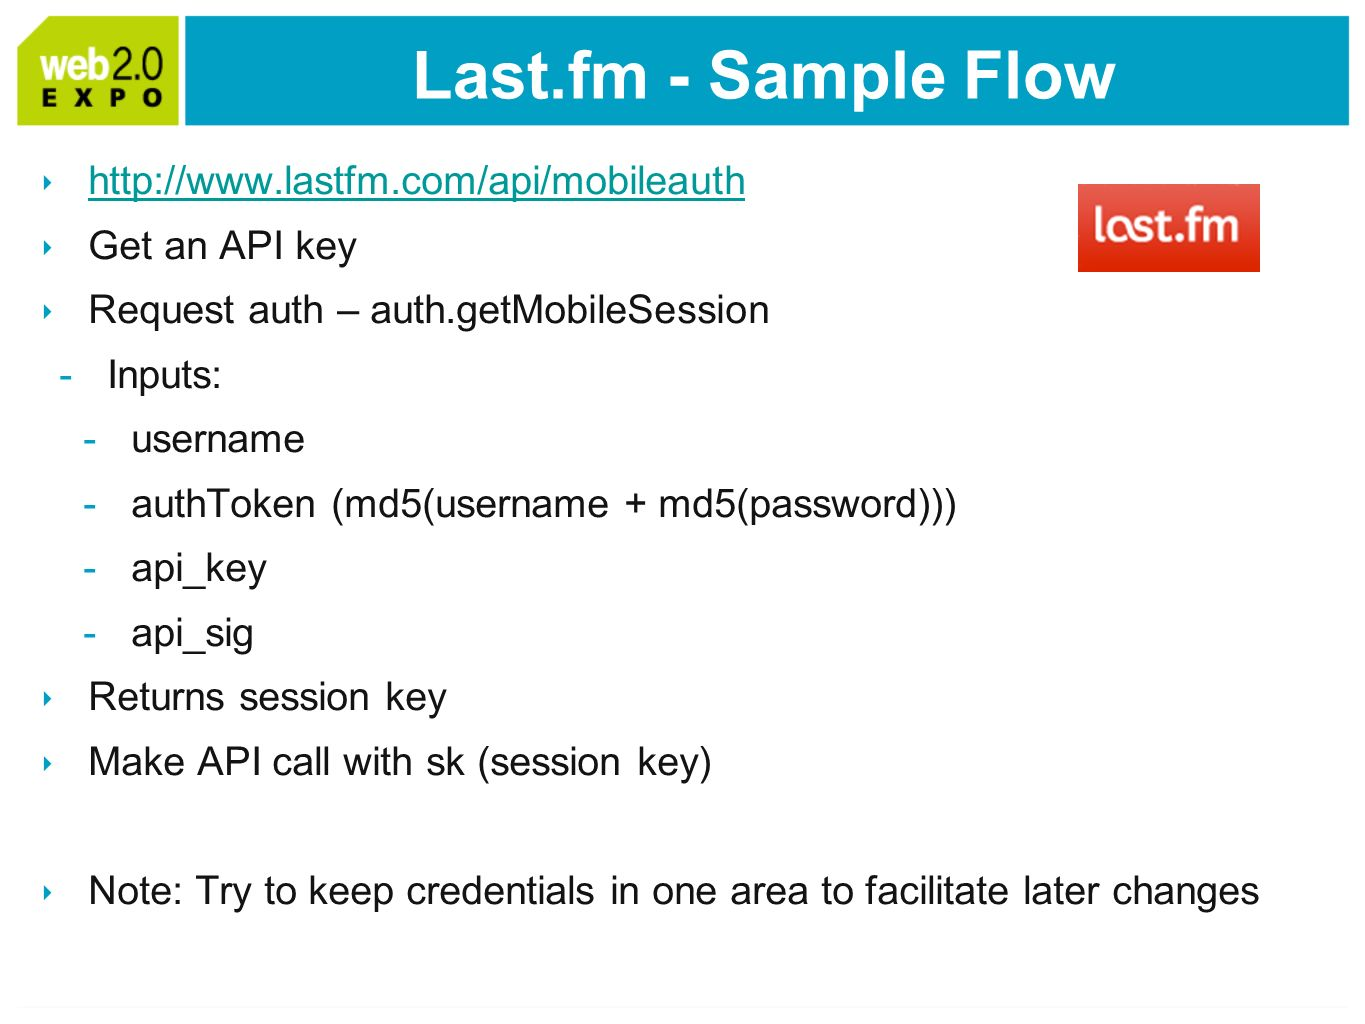 Last.fm - Sample Flow   Get an API key Request auth – auth.getMobileSession -Inputs: -username -authToken (md5(username + md5(password))) -api_key -api_sig Returns session key Make API call with sk (session key) Note: Try to keep credentials in one area to facilitate later changes